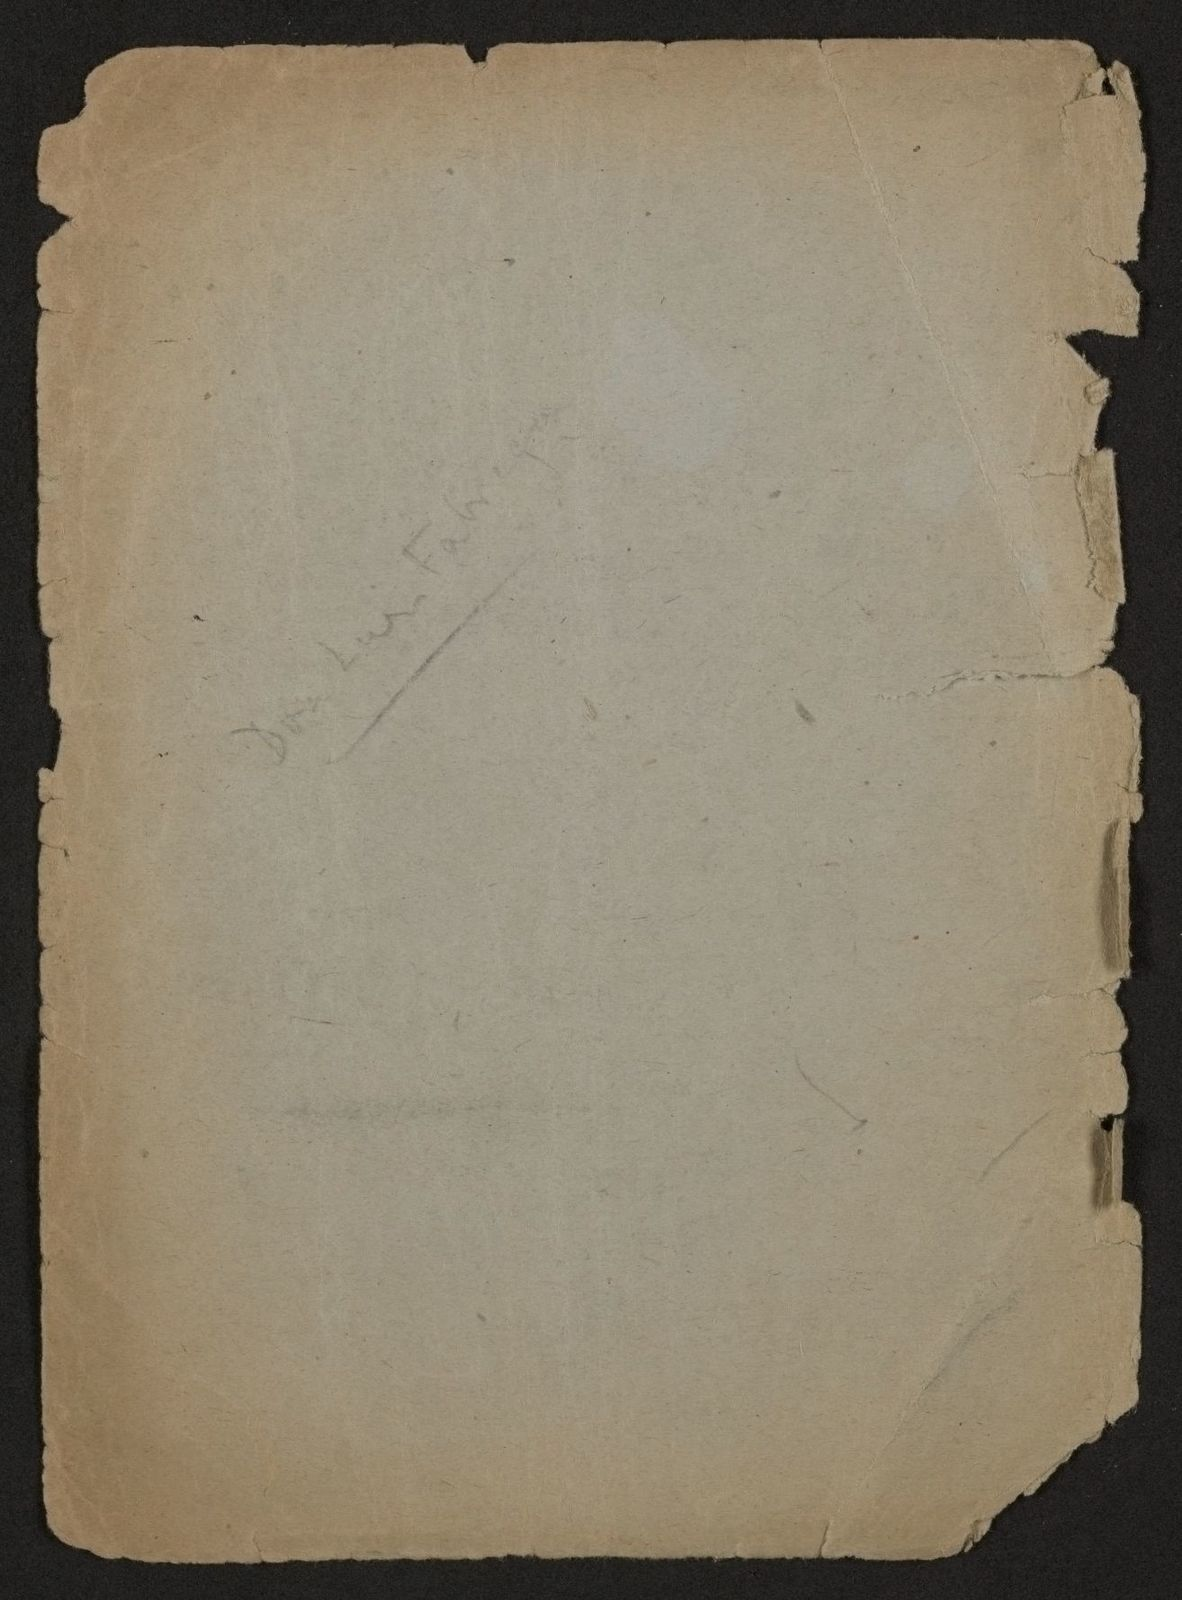 Alan Lomax Collection, Manuscripts, Mississippi and Texas, 1947-1948